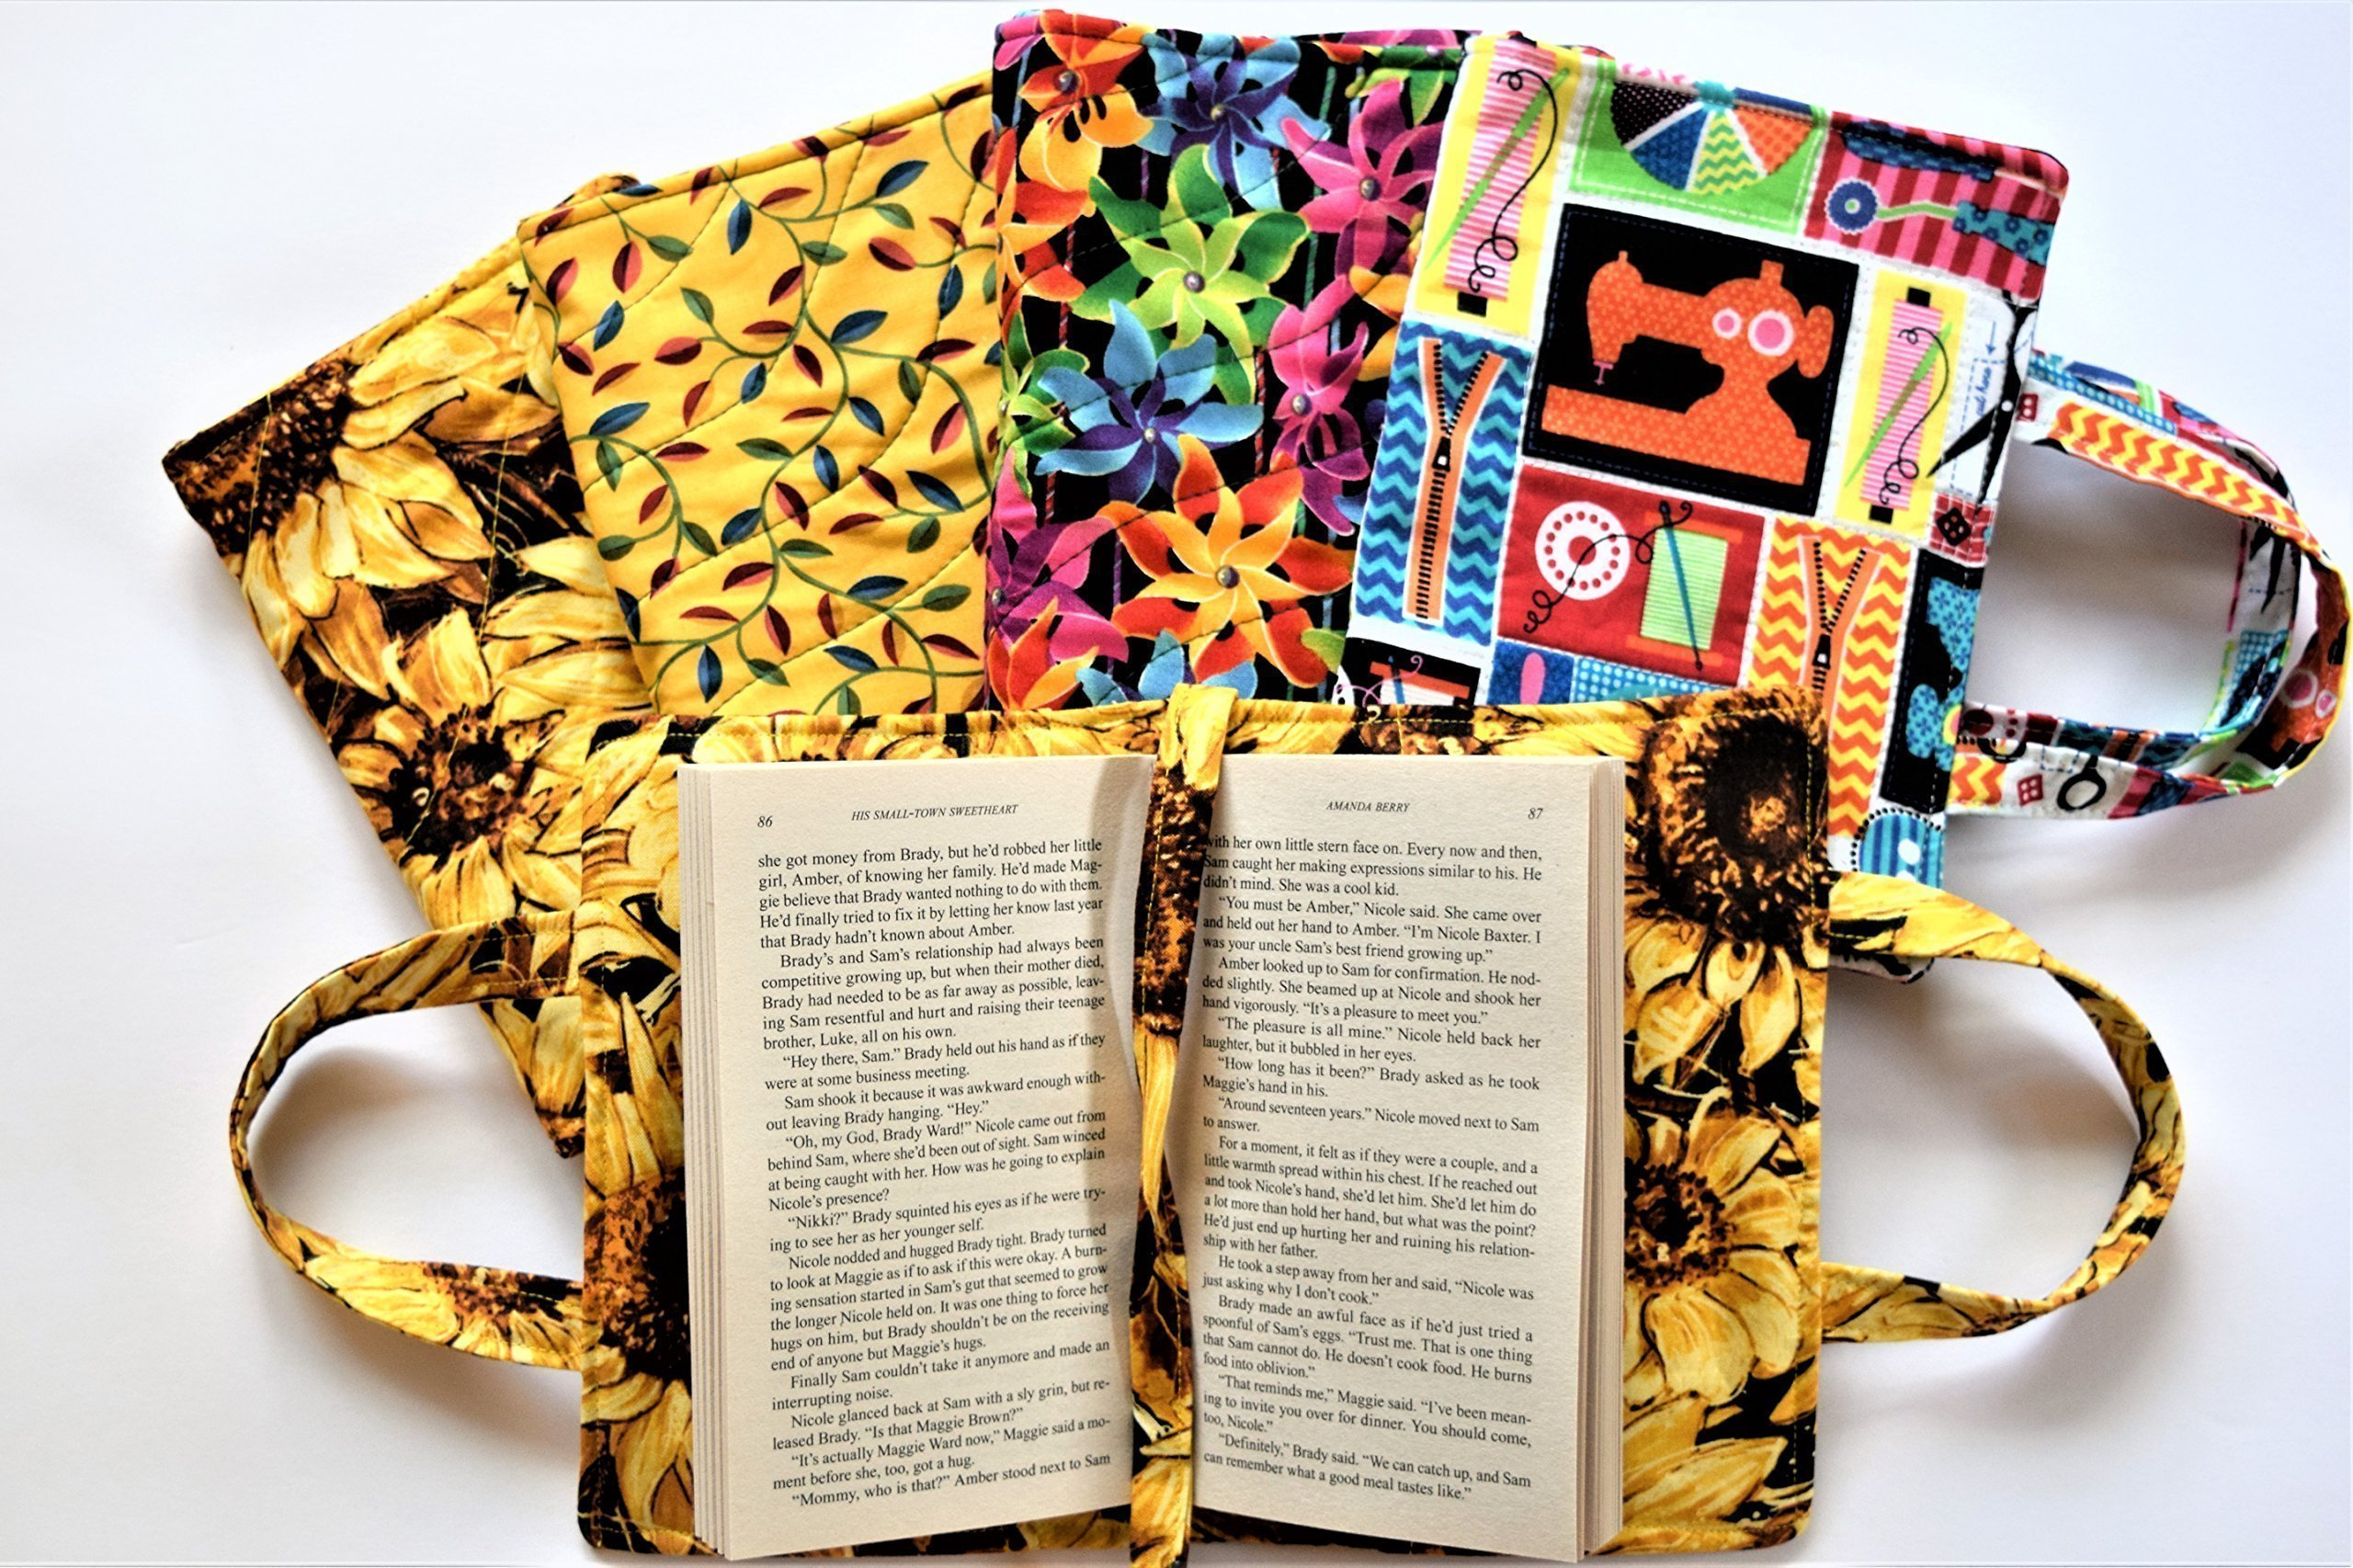 Quilted Paperback Romance,Small Standard Book 6.55'' x 4'' x 1.5'' Cover with Carry Strap Handles and Attached Bookmark,Sunflowers,Leaves